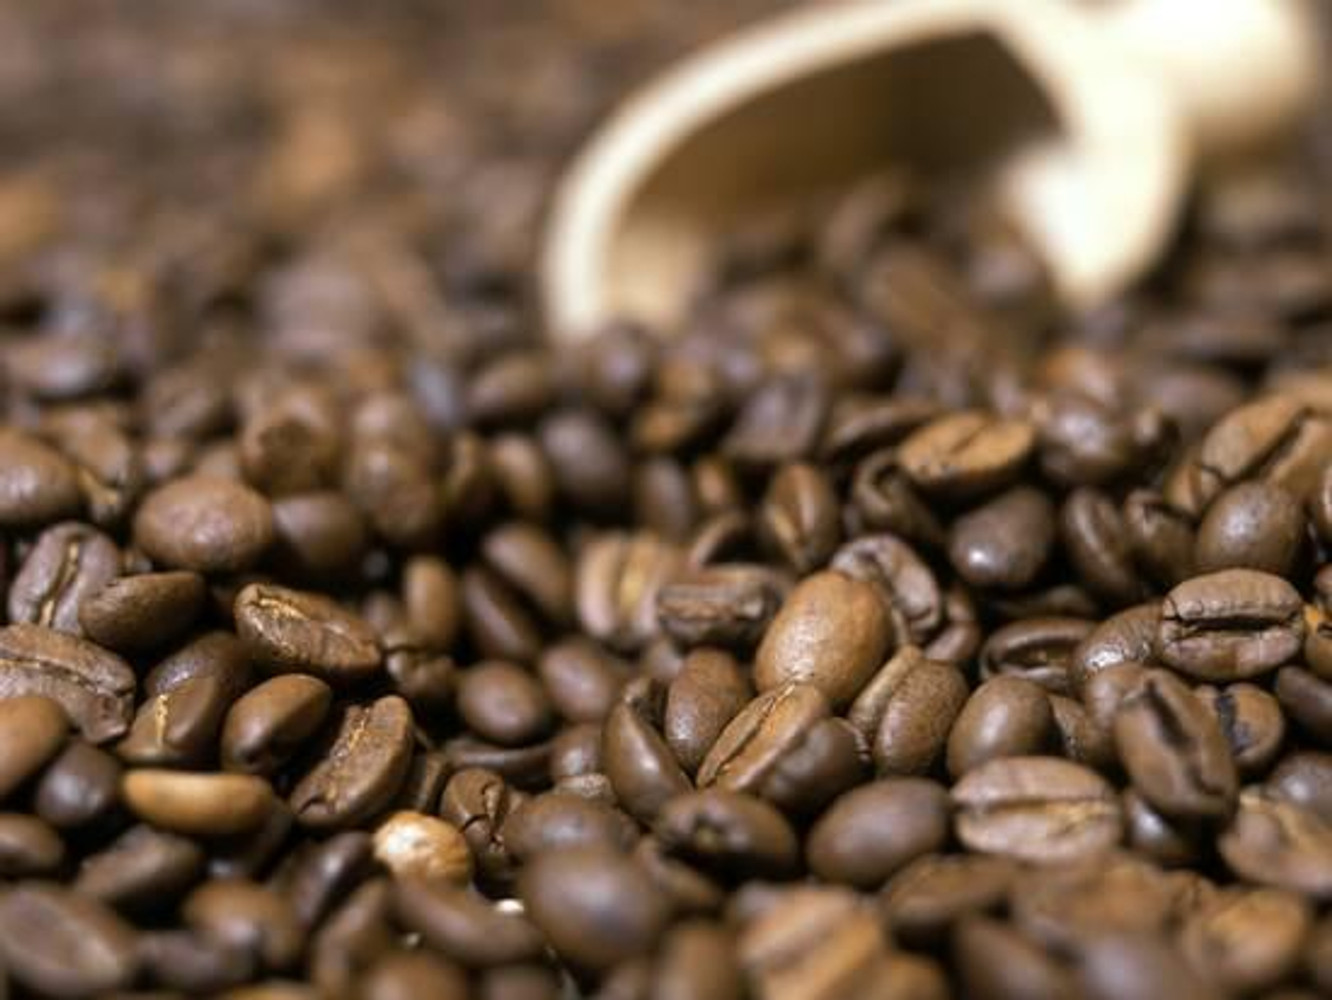 How to tell if your coffee is fresh?